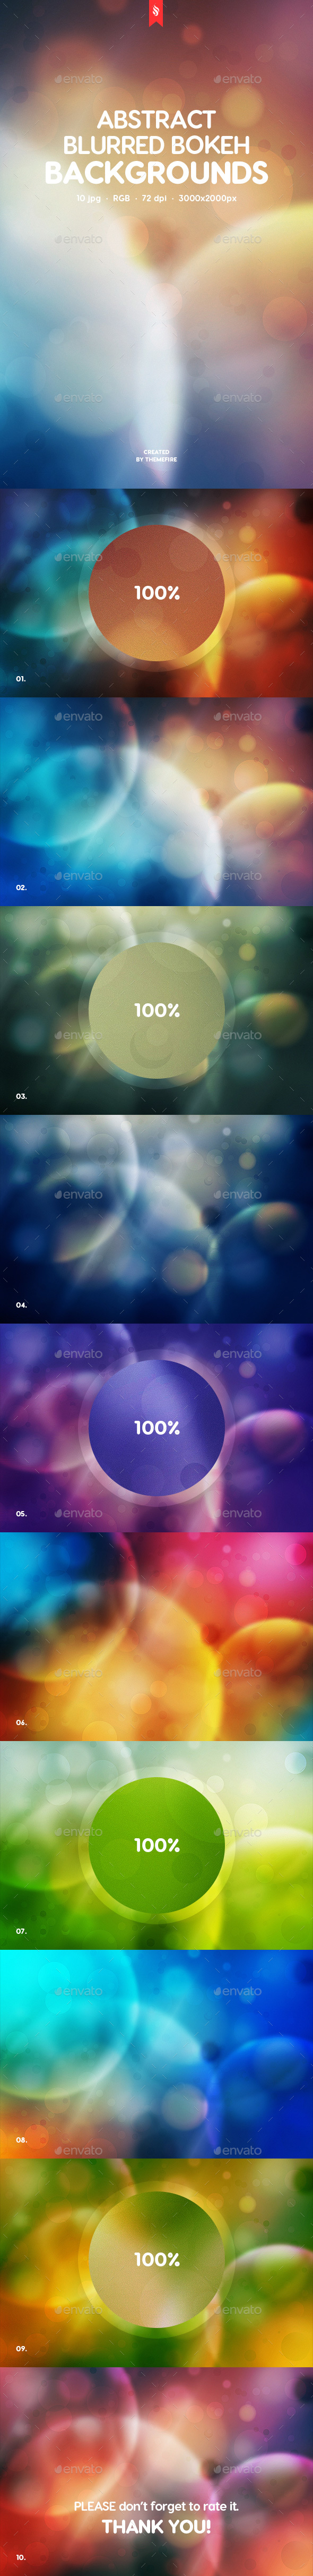 Blurred Bokeh Backgrounds - Abstract Backgrounds